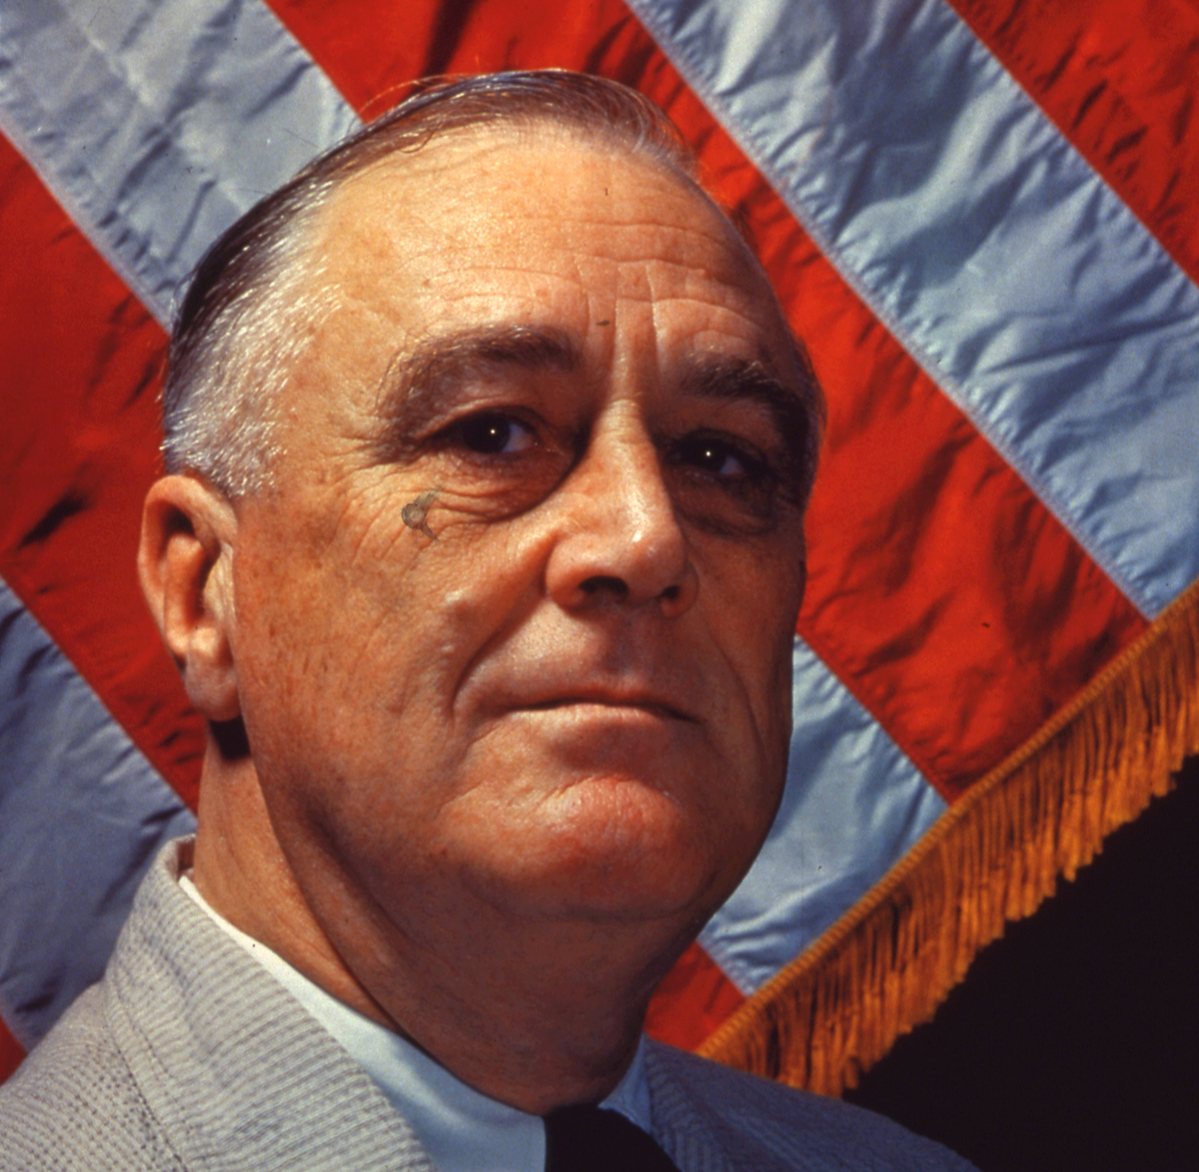 Portrait of American President Franklin Delano Roosevelt (1882 - 1945), 1940s. An American flag is in the background.